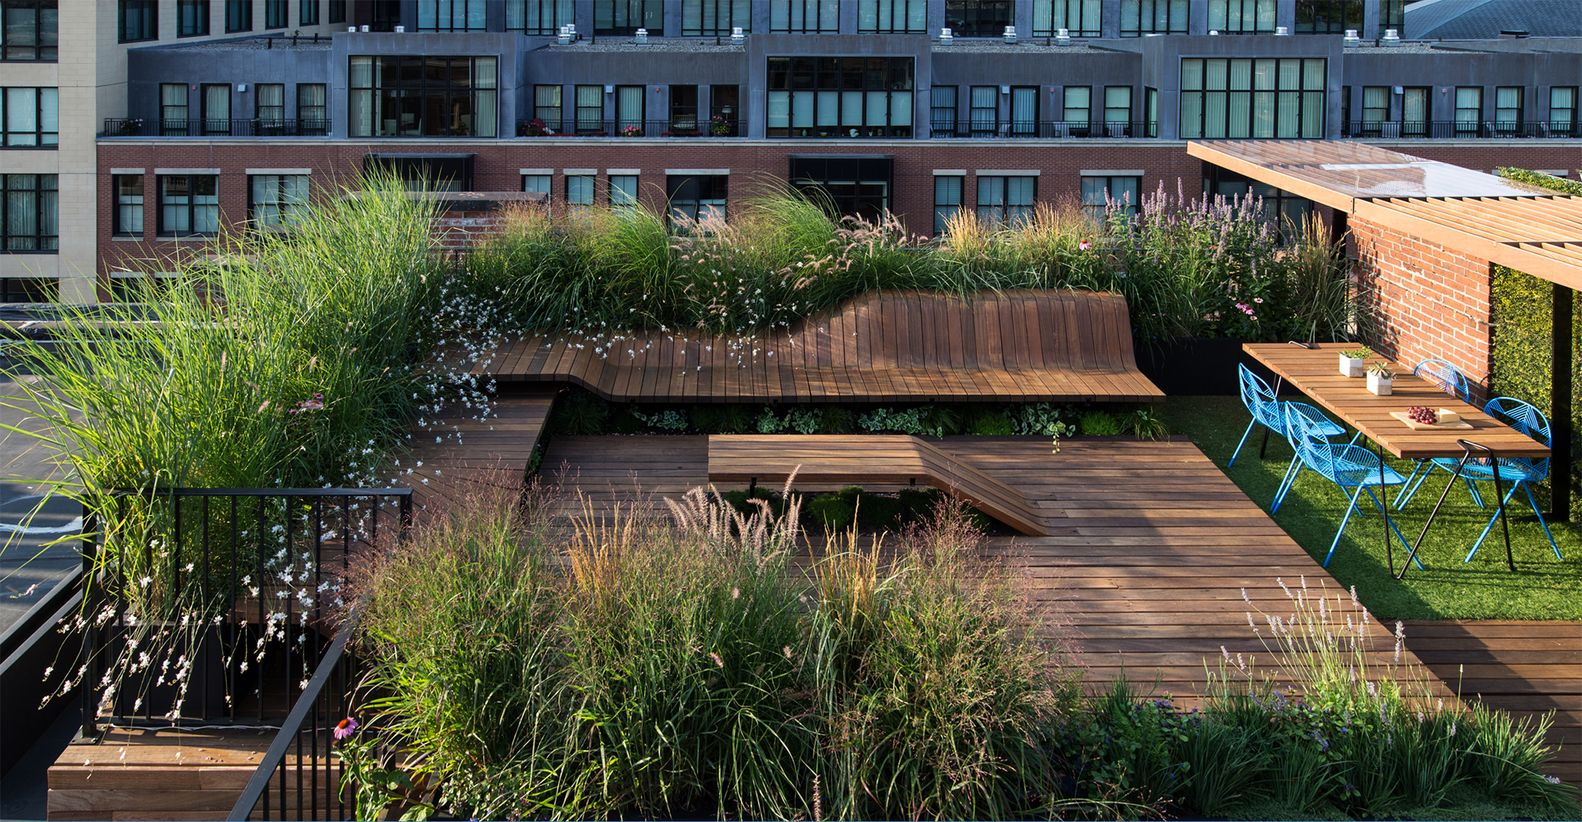 Inspiring urban garden designs and their creators for Urban garden design ideas